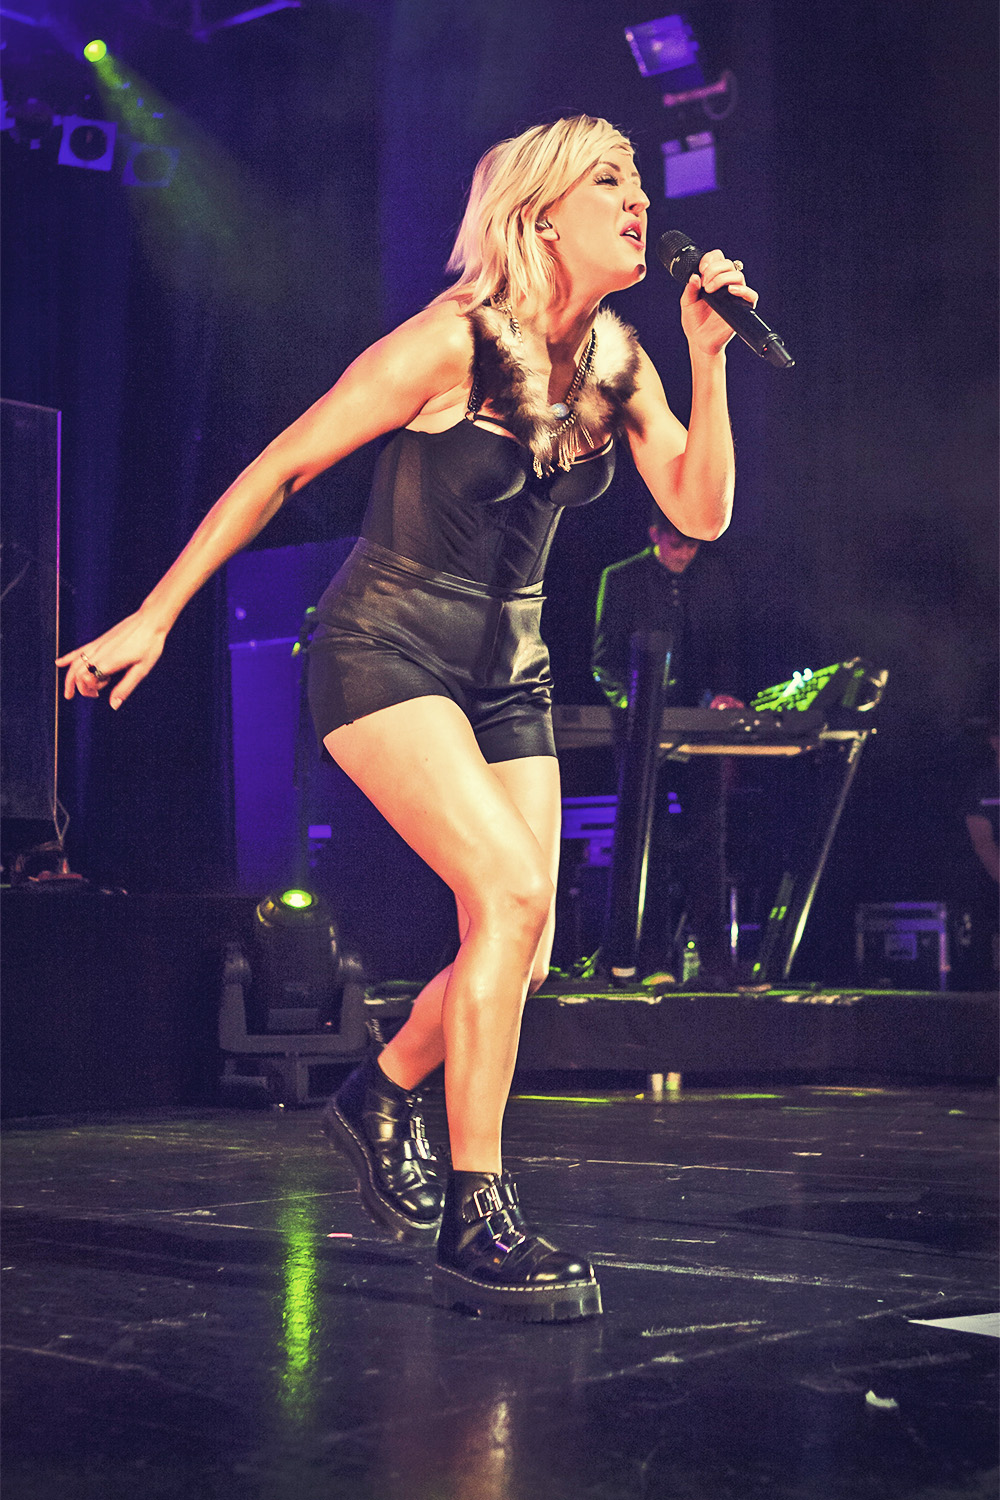 Ellie Goulding perform Concert at O2 Academy